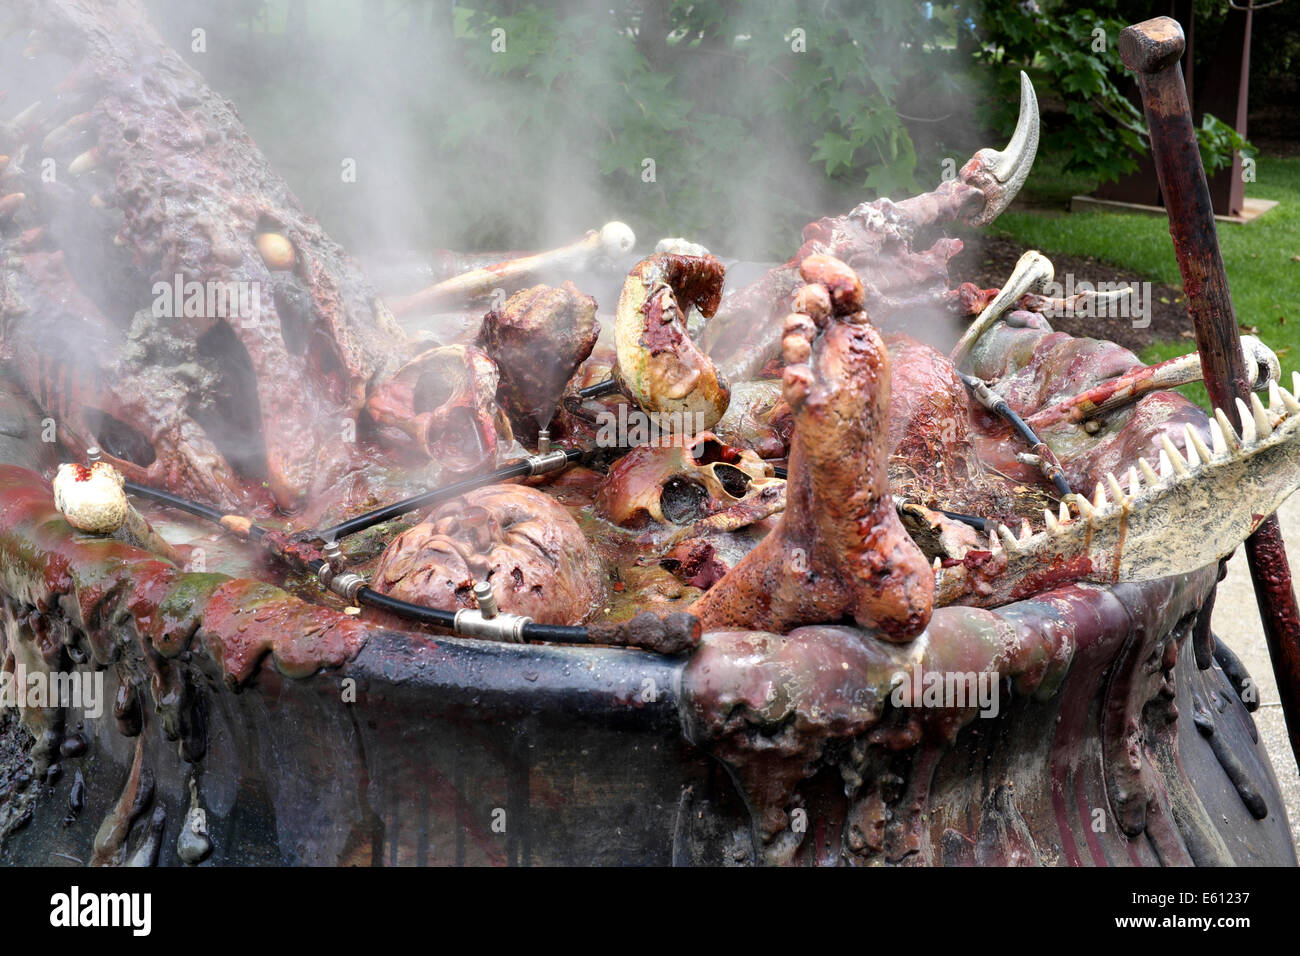 Closeup of pot of boiling body parts - part of Three Fates Sculpture at the NJ Grounds for Sculpture - Stock Image